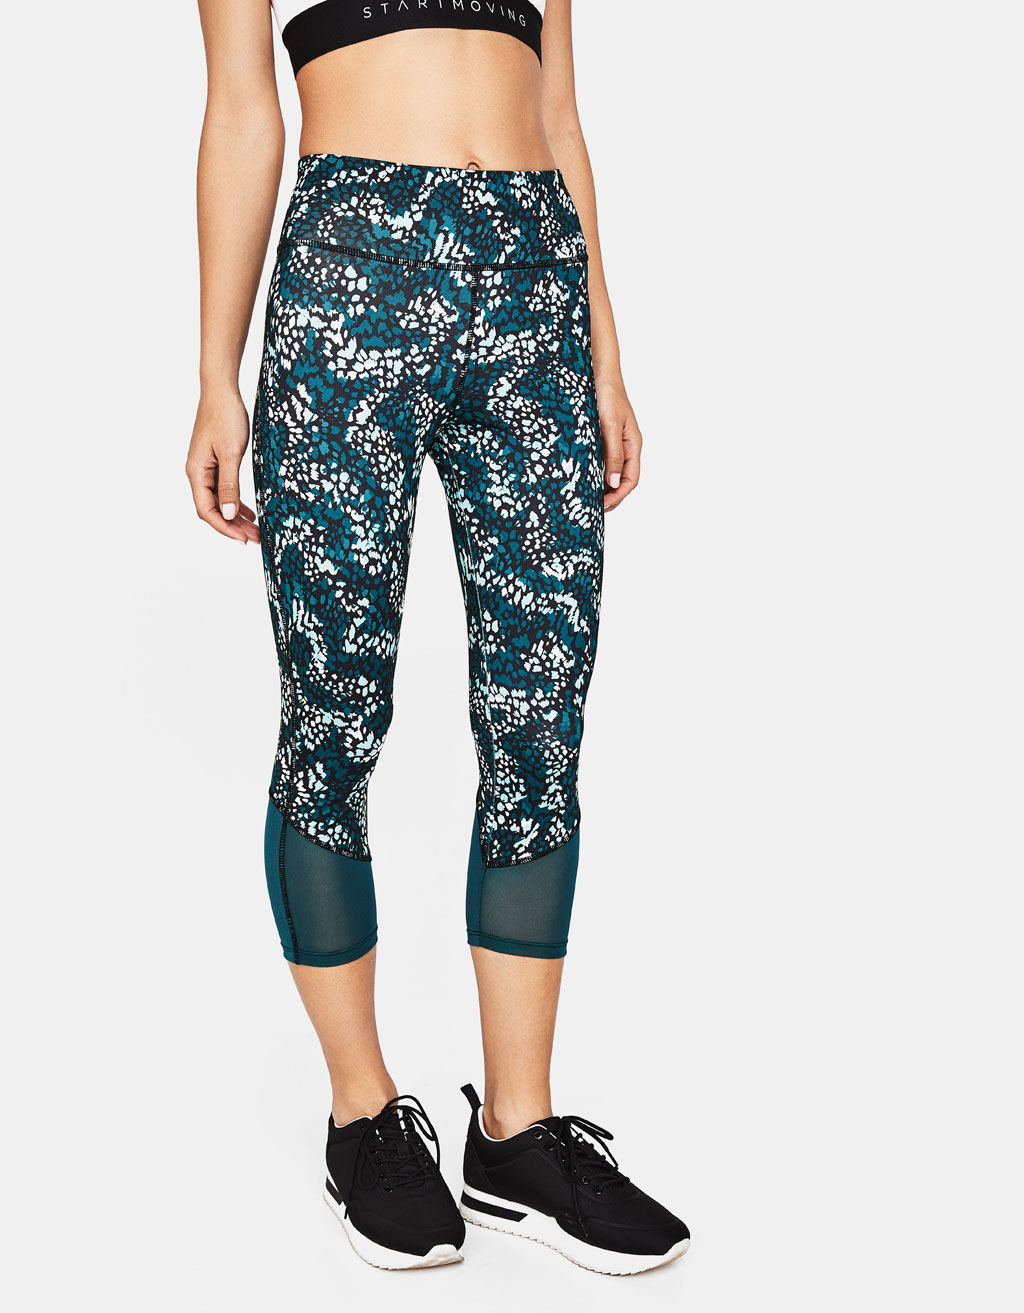 Printed sports leggings